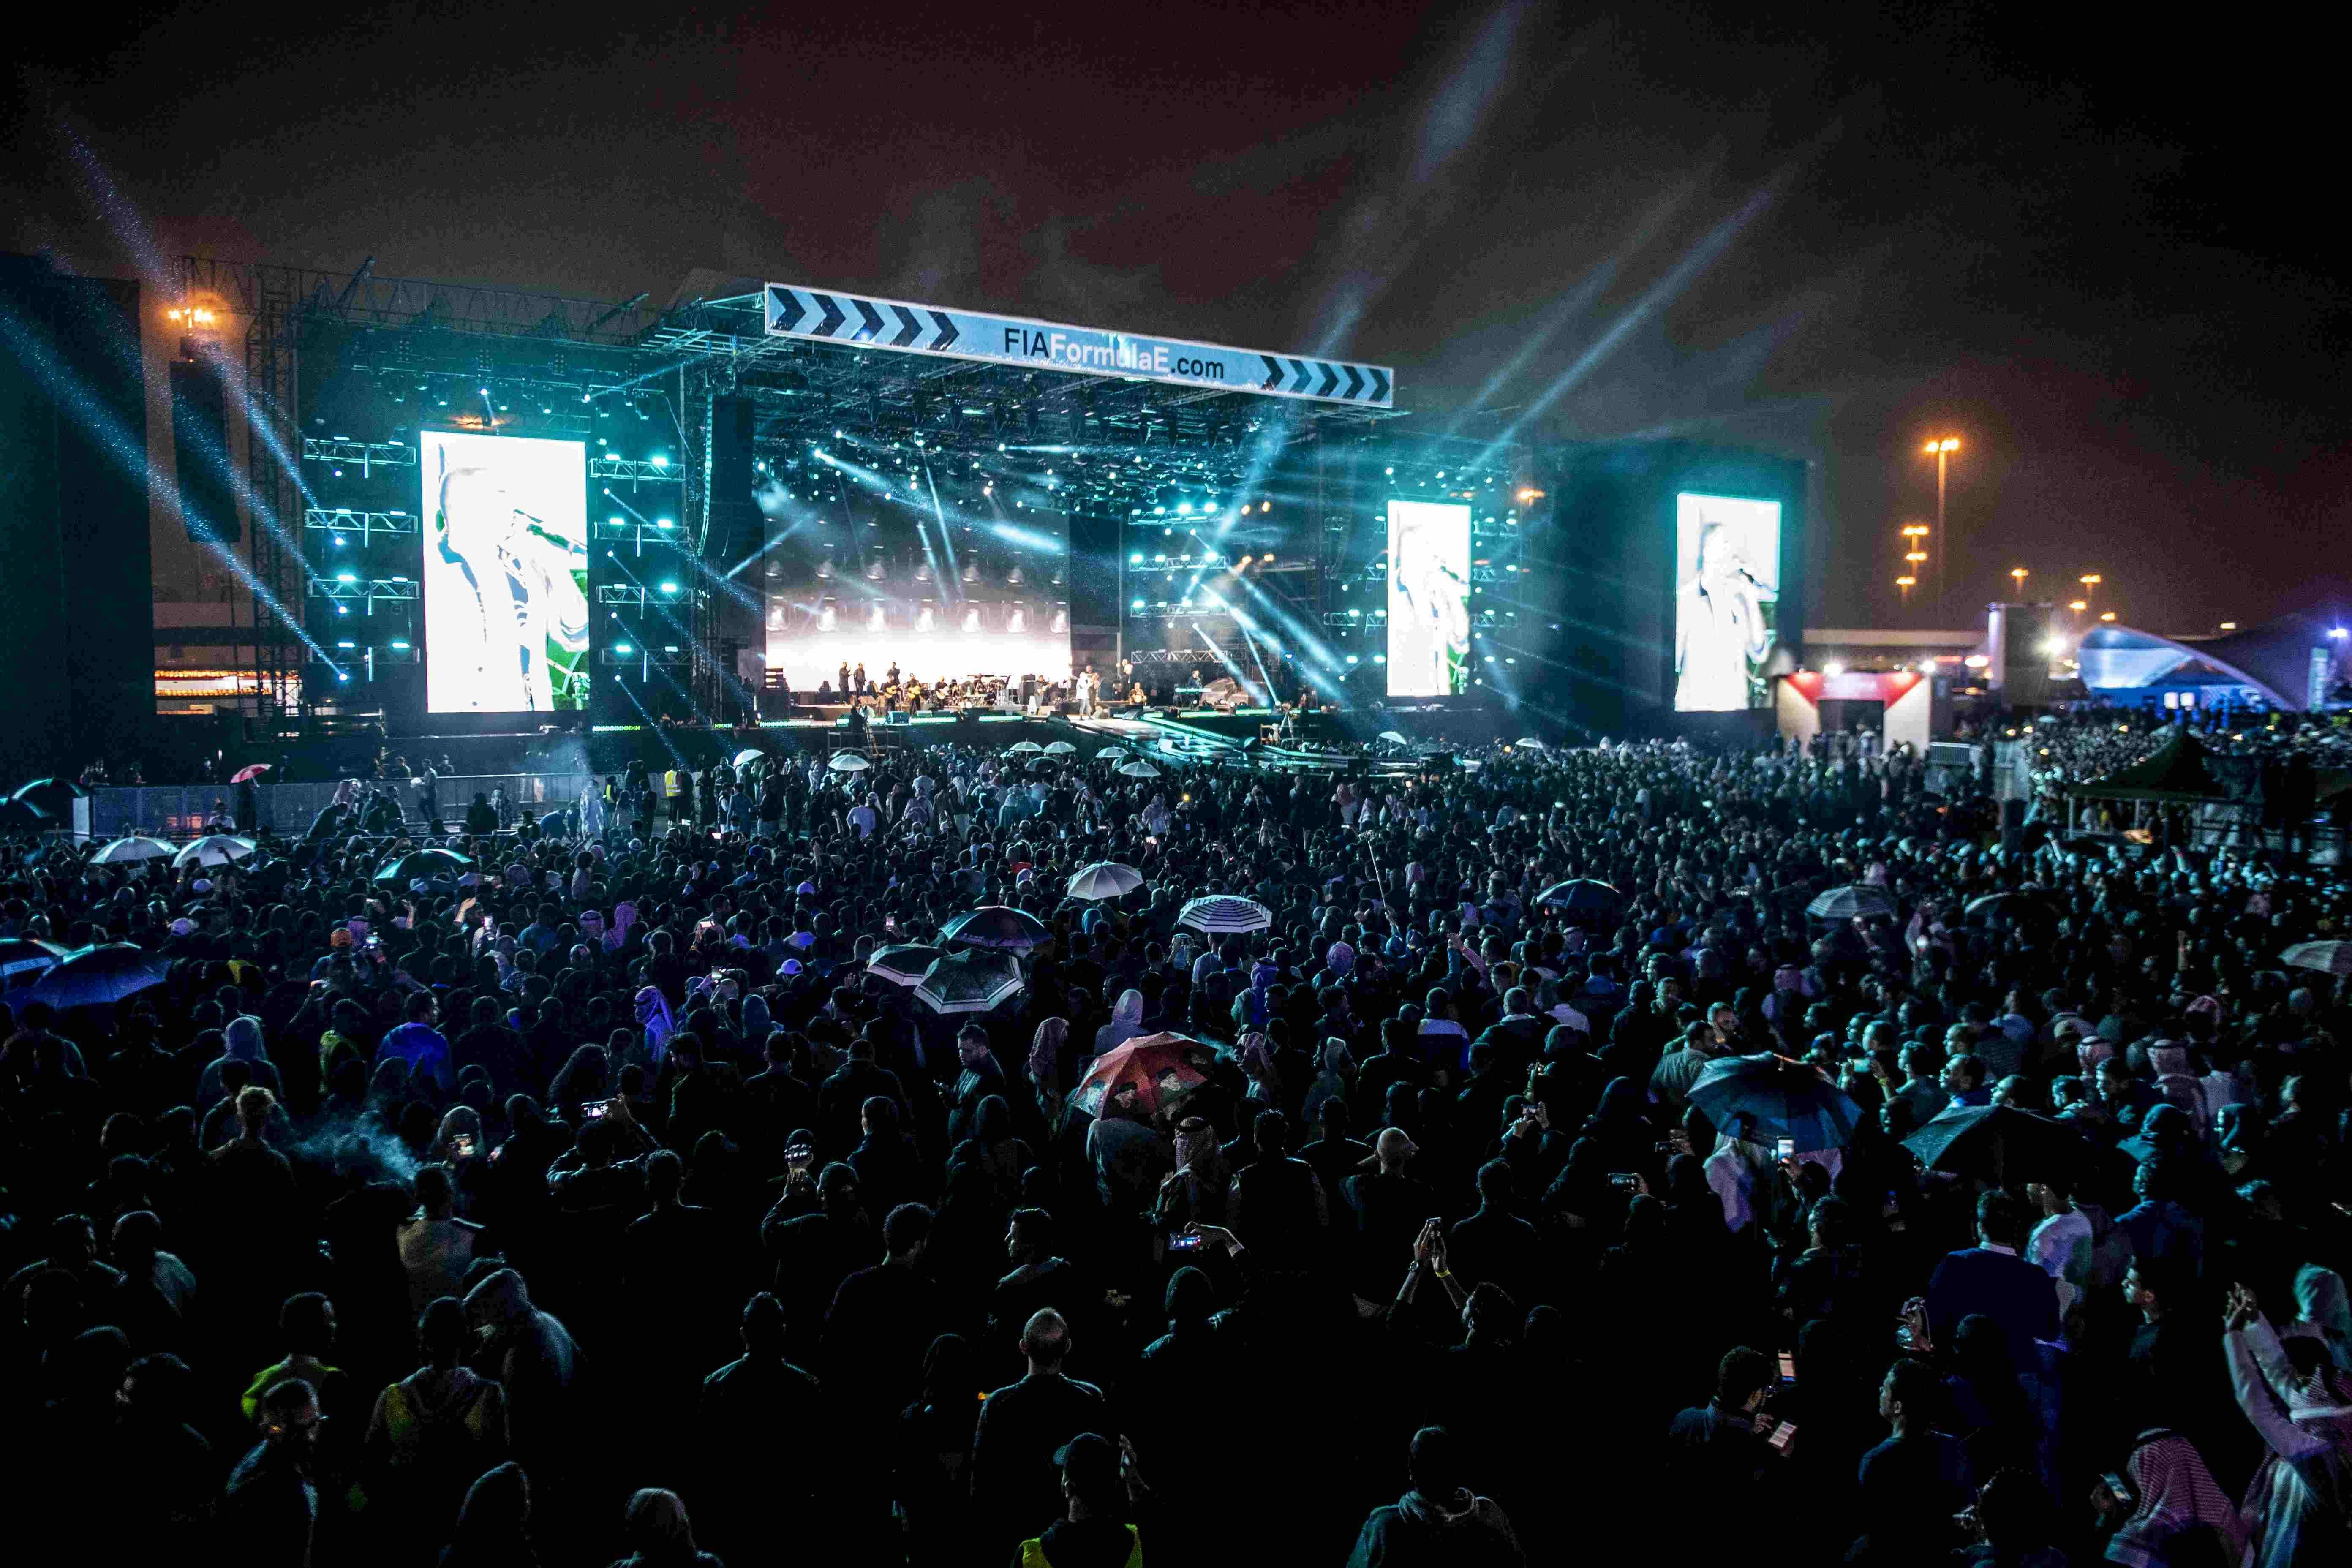 Harnessing the power of both motor sport and music, Formula E brought fans together for one big celebration in the Saudi capital